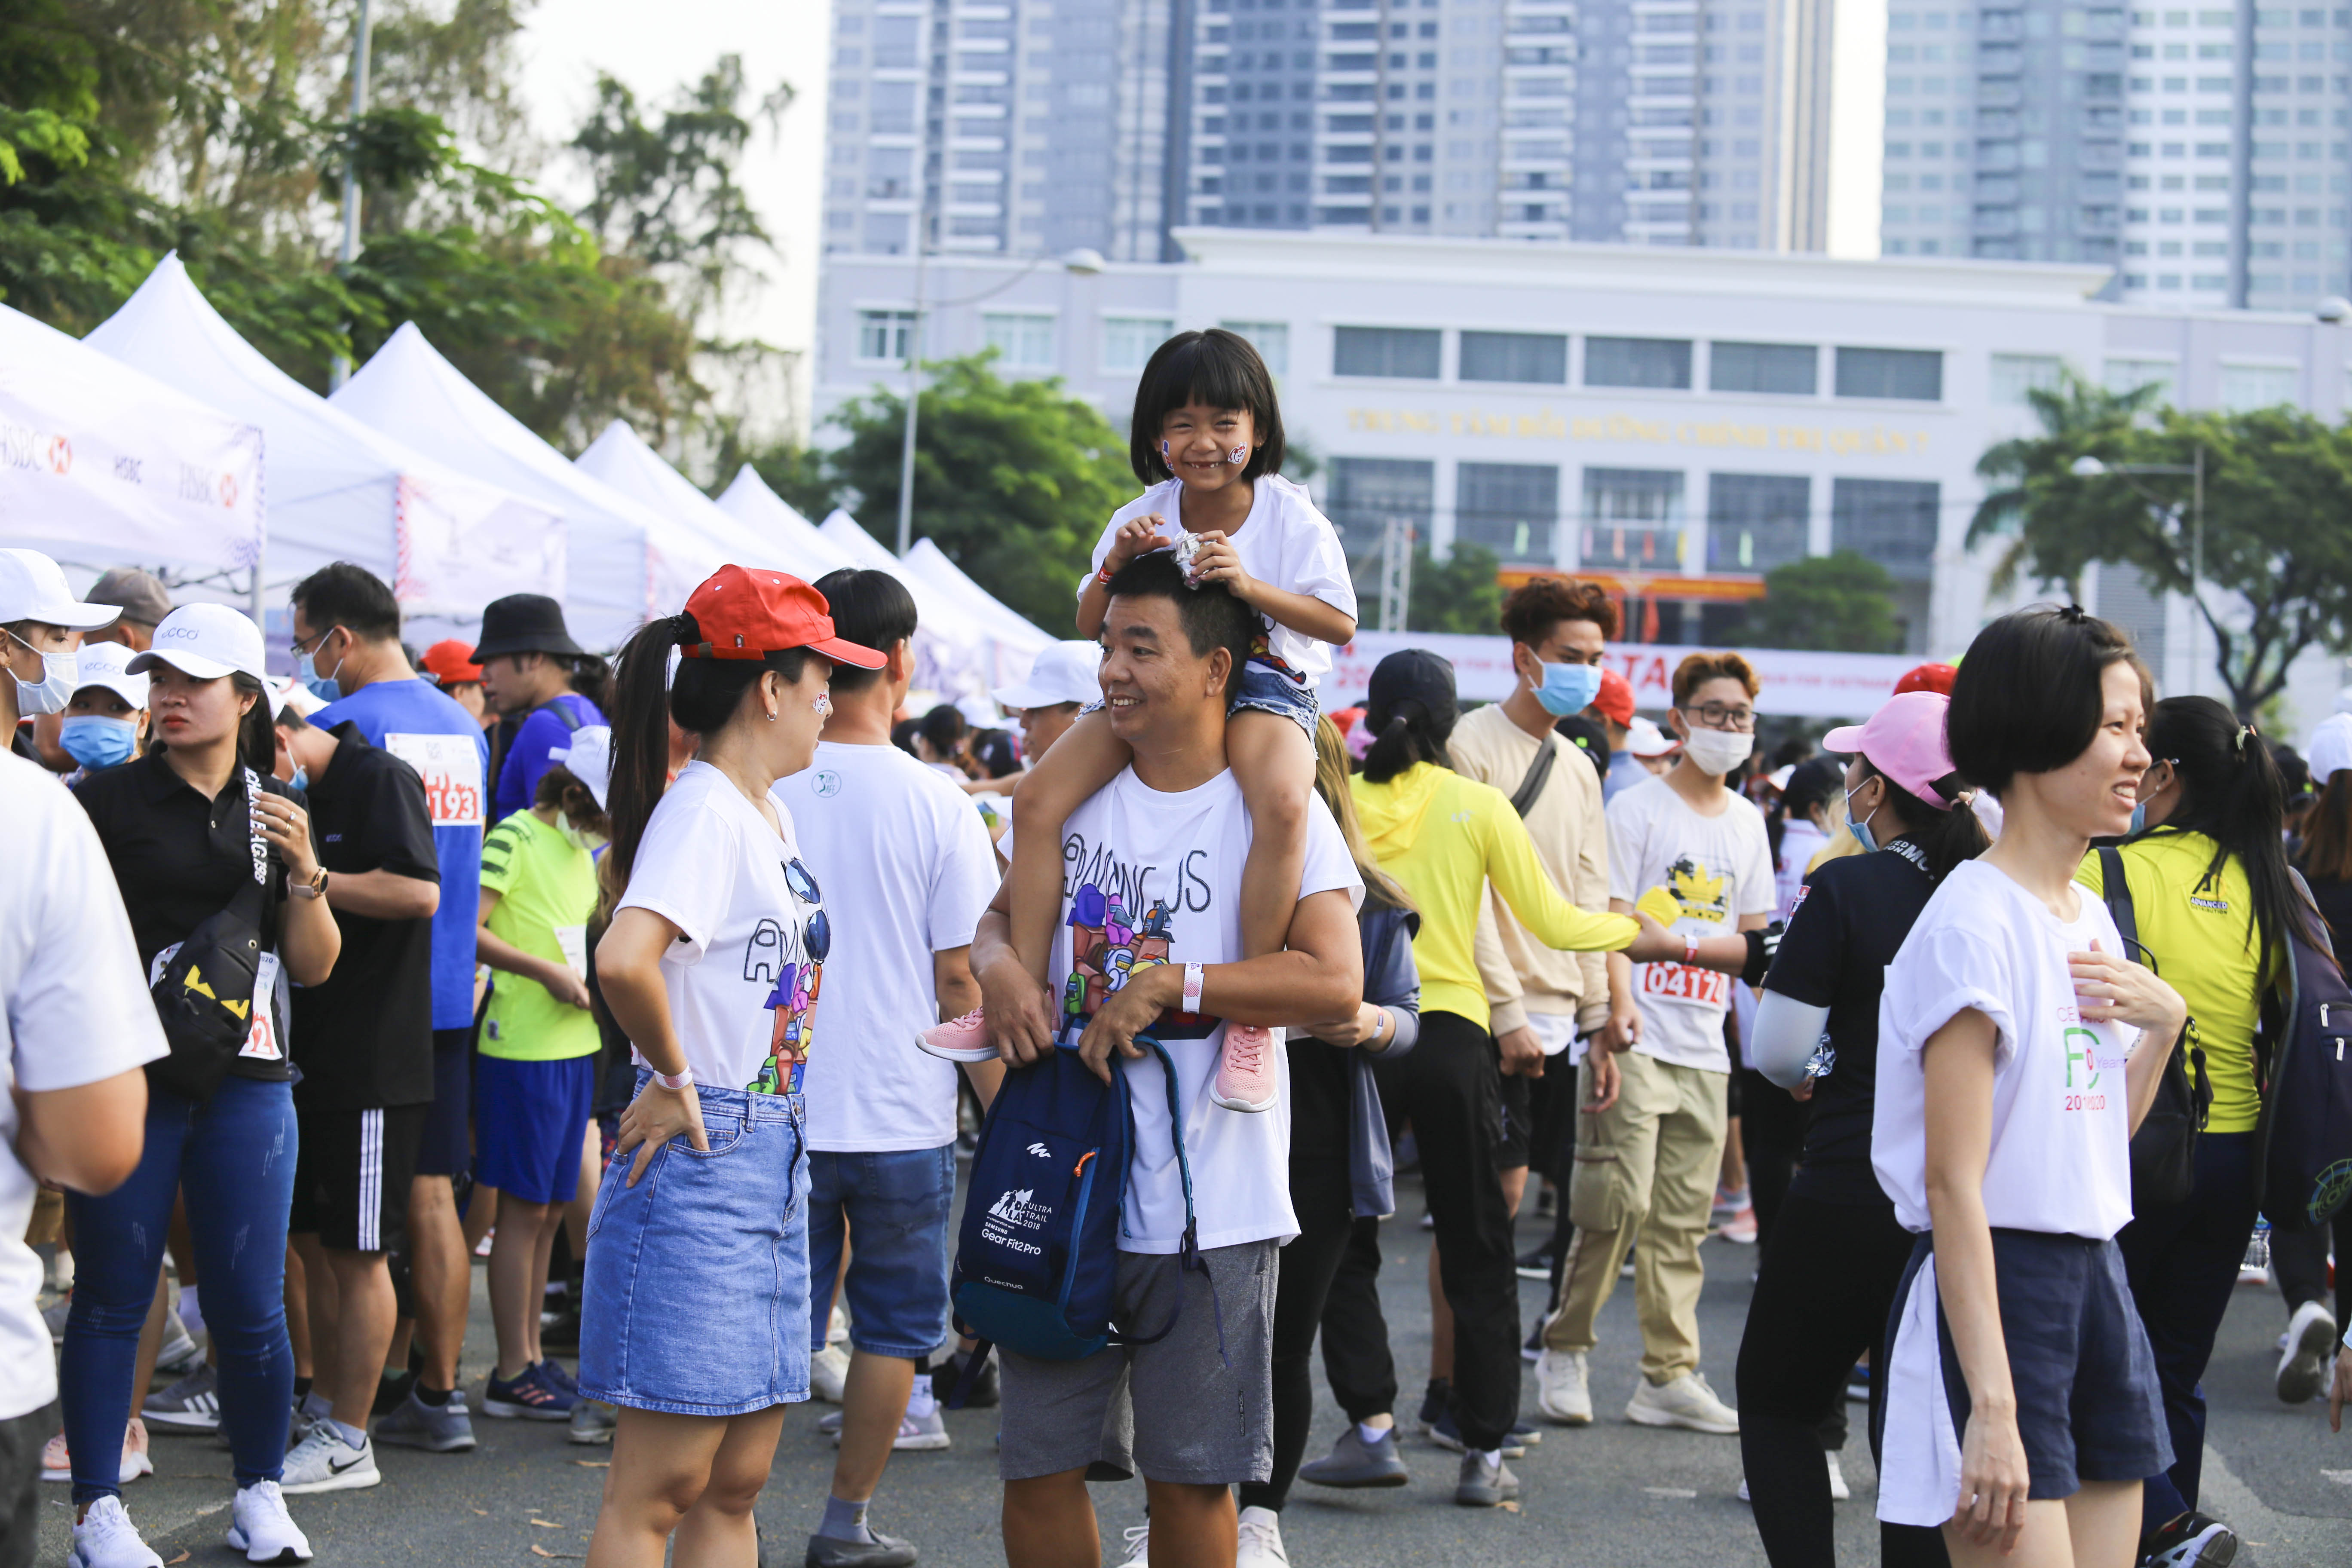 Family enjoyed the event together at the 20th BritCham Charity Fun Run in Ho Chi Minh City on November 15,2020. Photo: Duc Khue/ Tuoi Tre